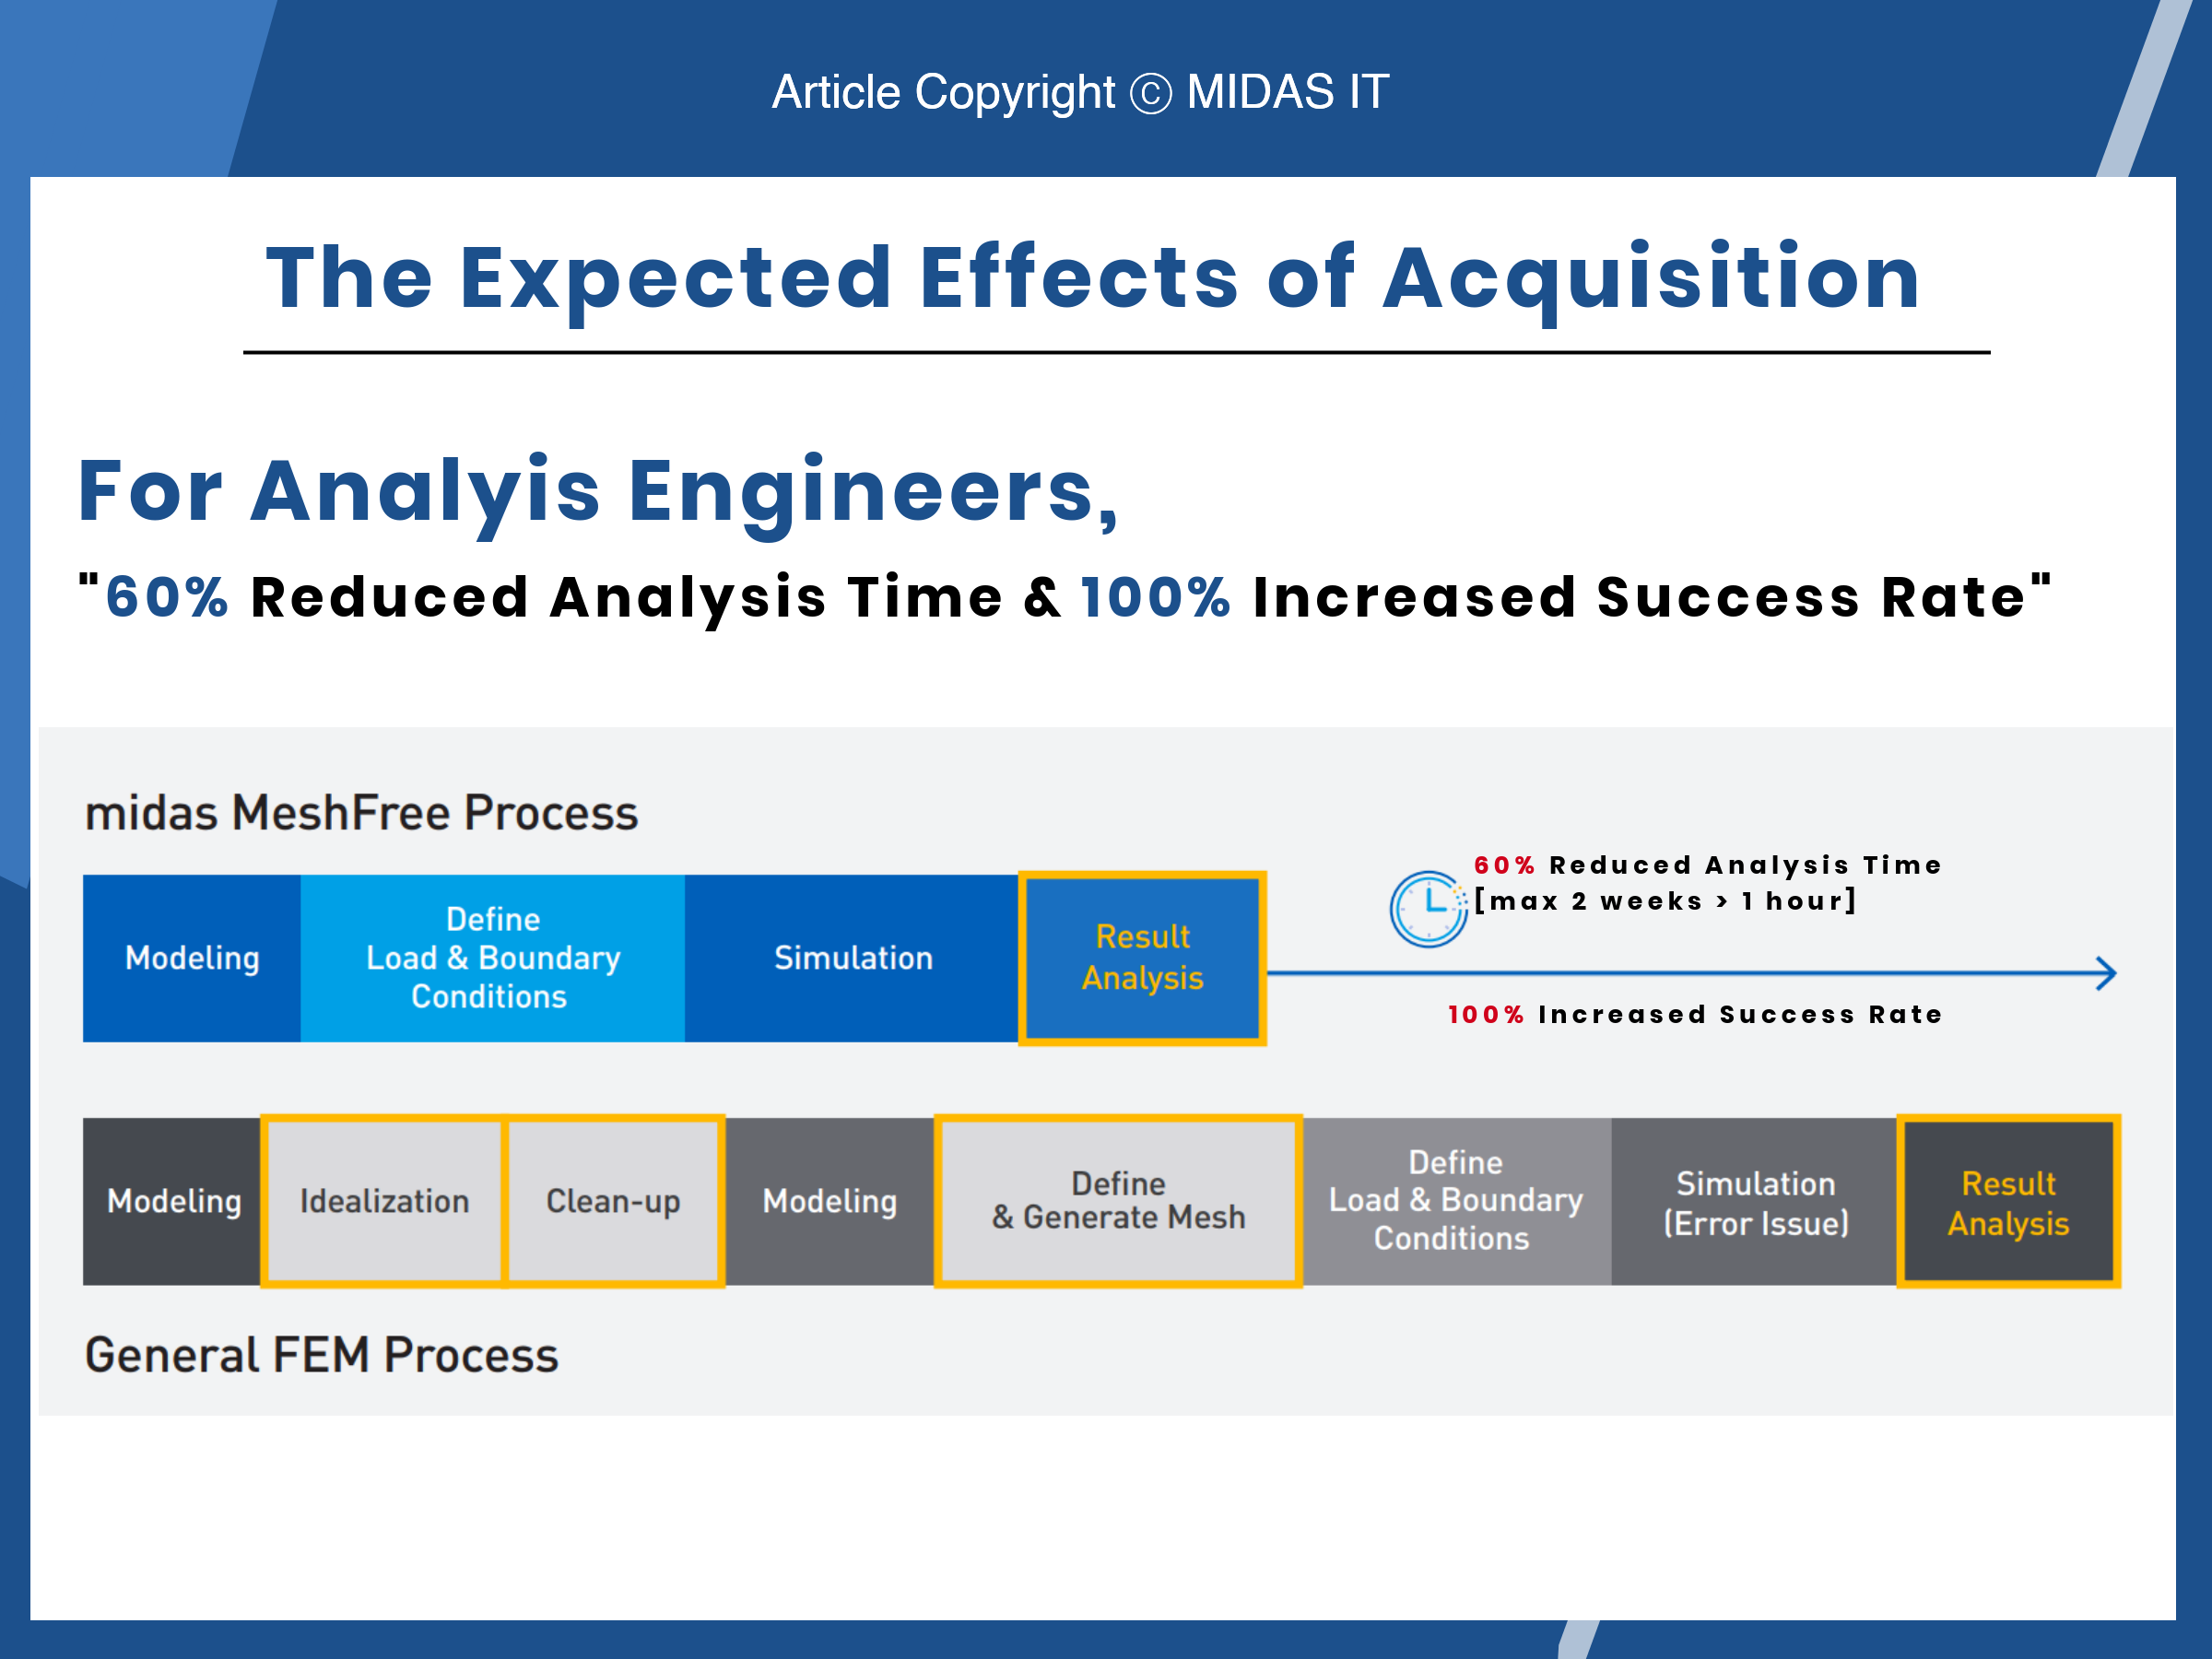 The expected effects of acquisition of MeshFree for analysis engineers. (2nd Slide)